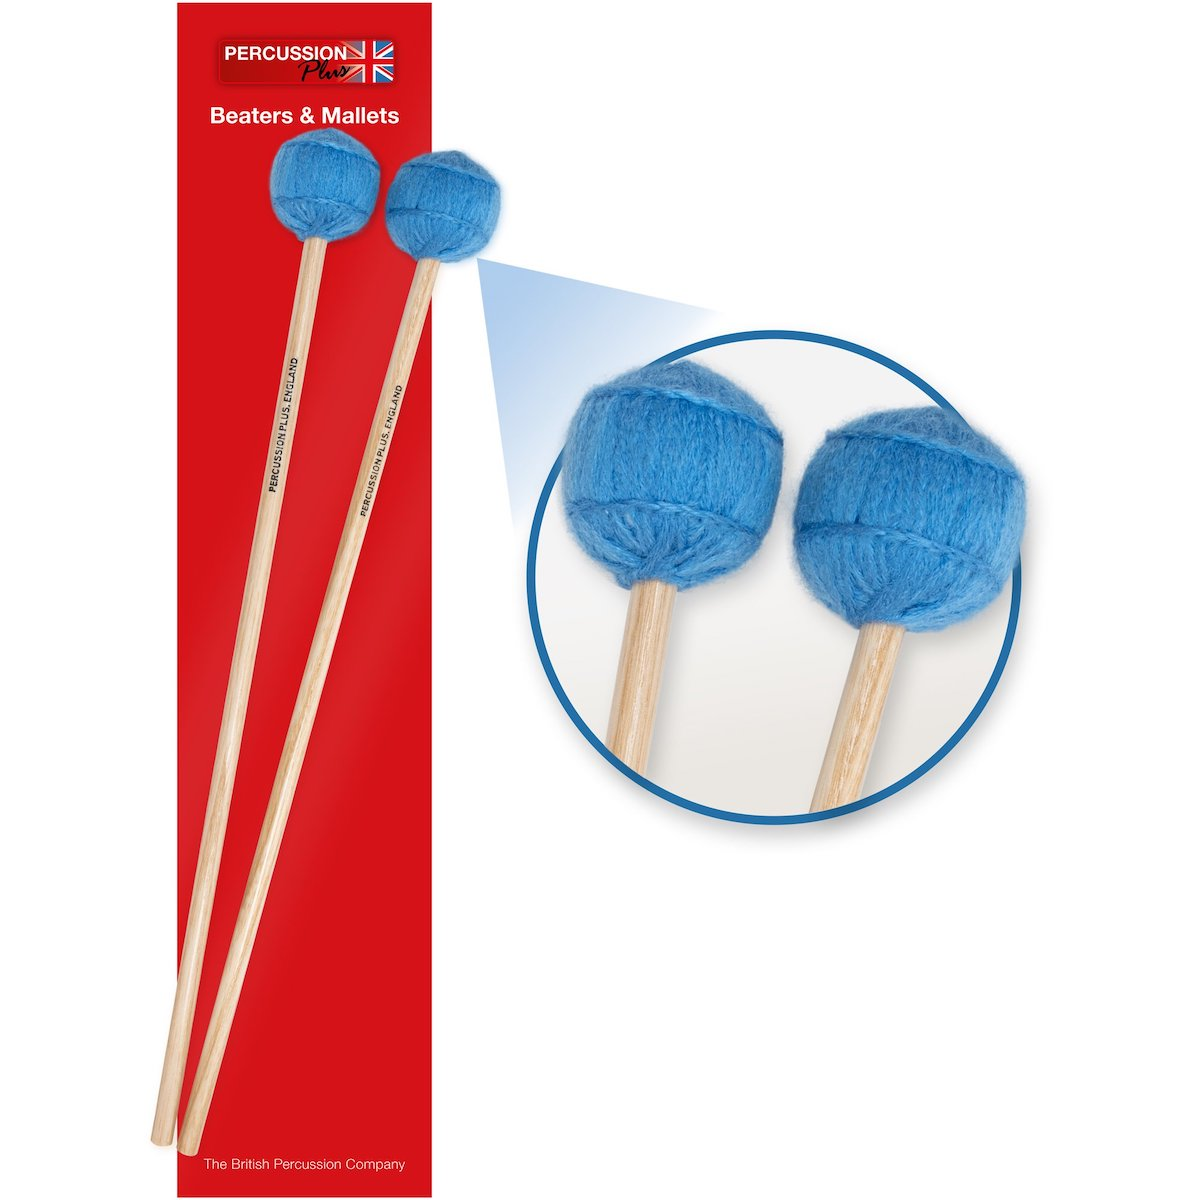 Percussion Plus Pair of Mallets - Soft